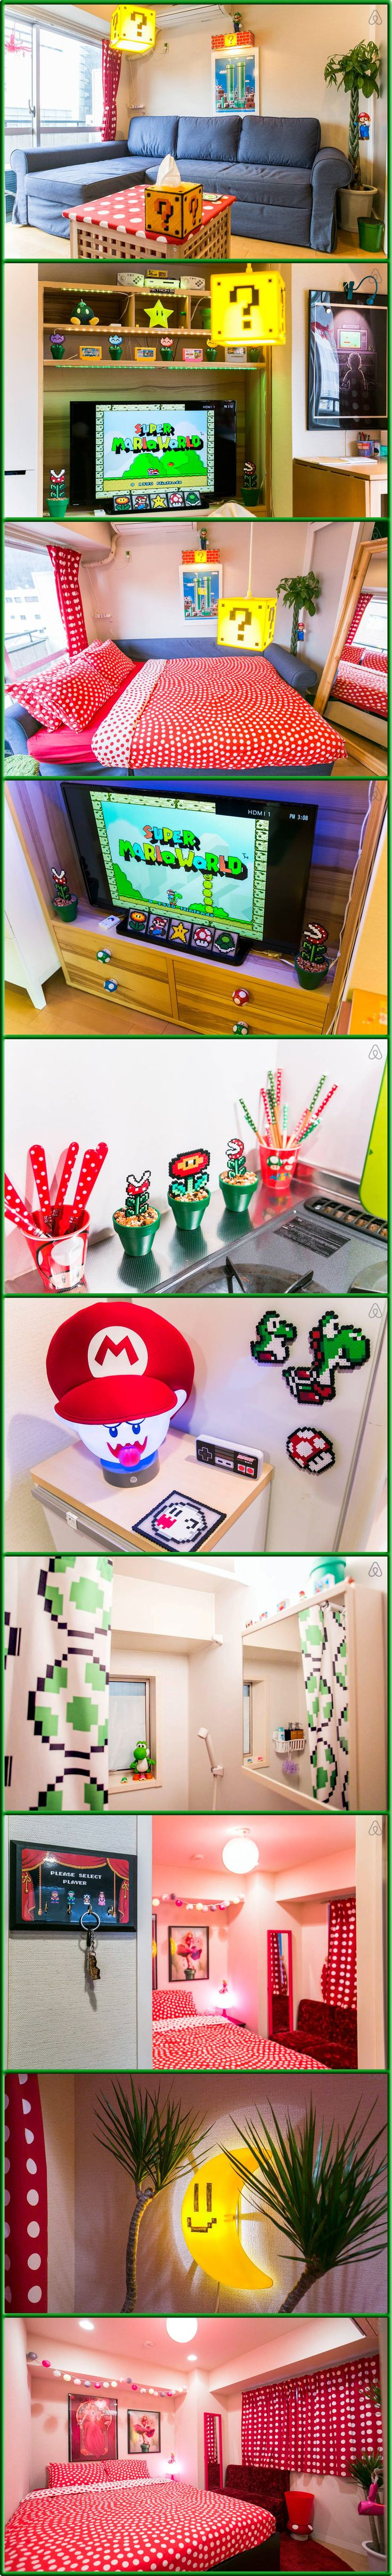 Mario World - Super Mario Bros themed Air BnB in Tokyo Japan. Complete with Princess Peach themed Bedroom